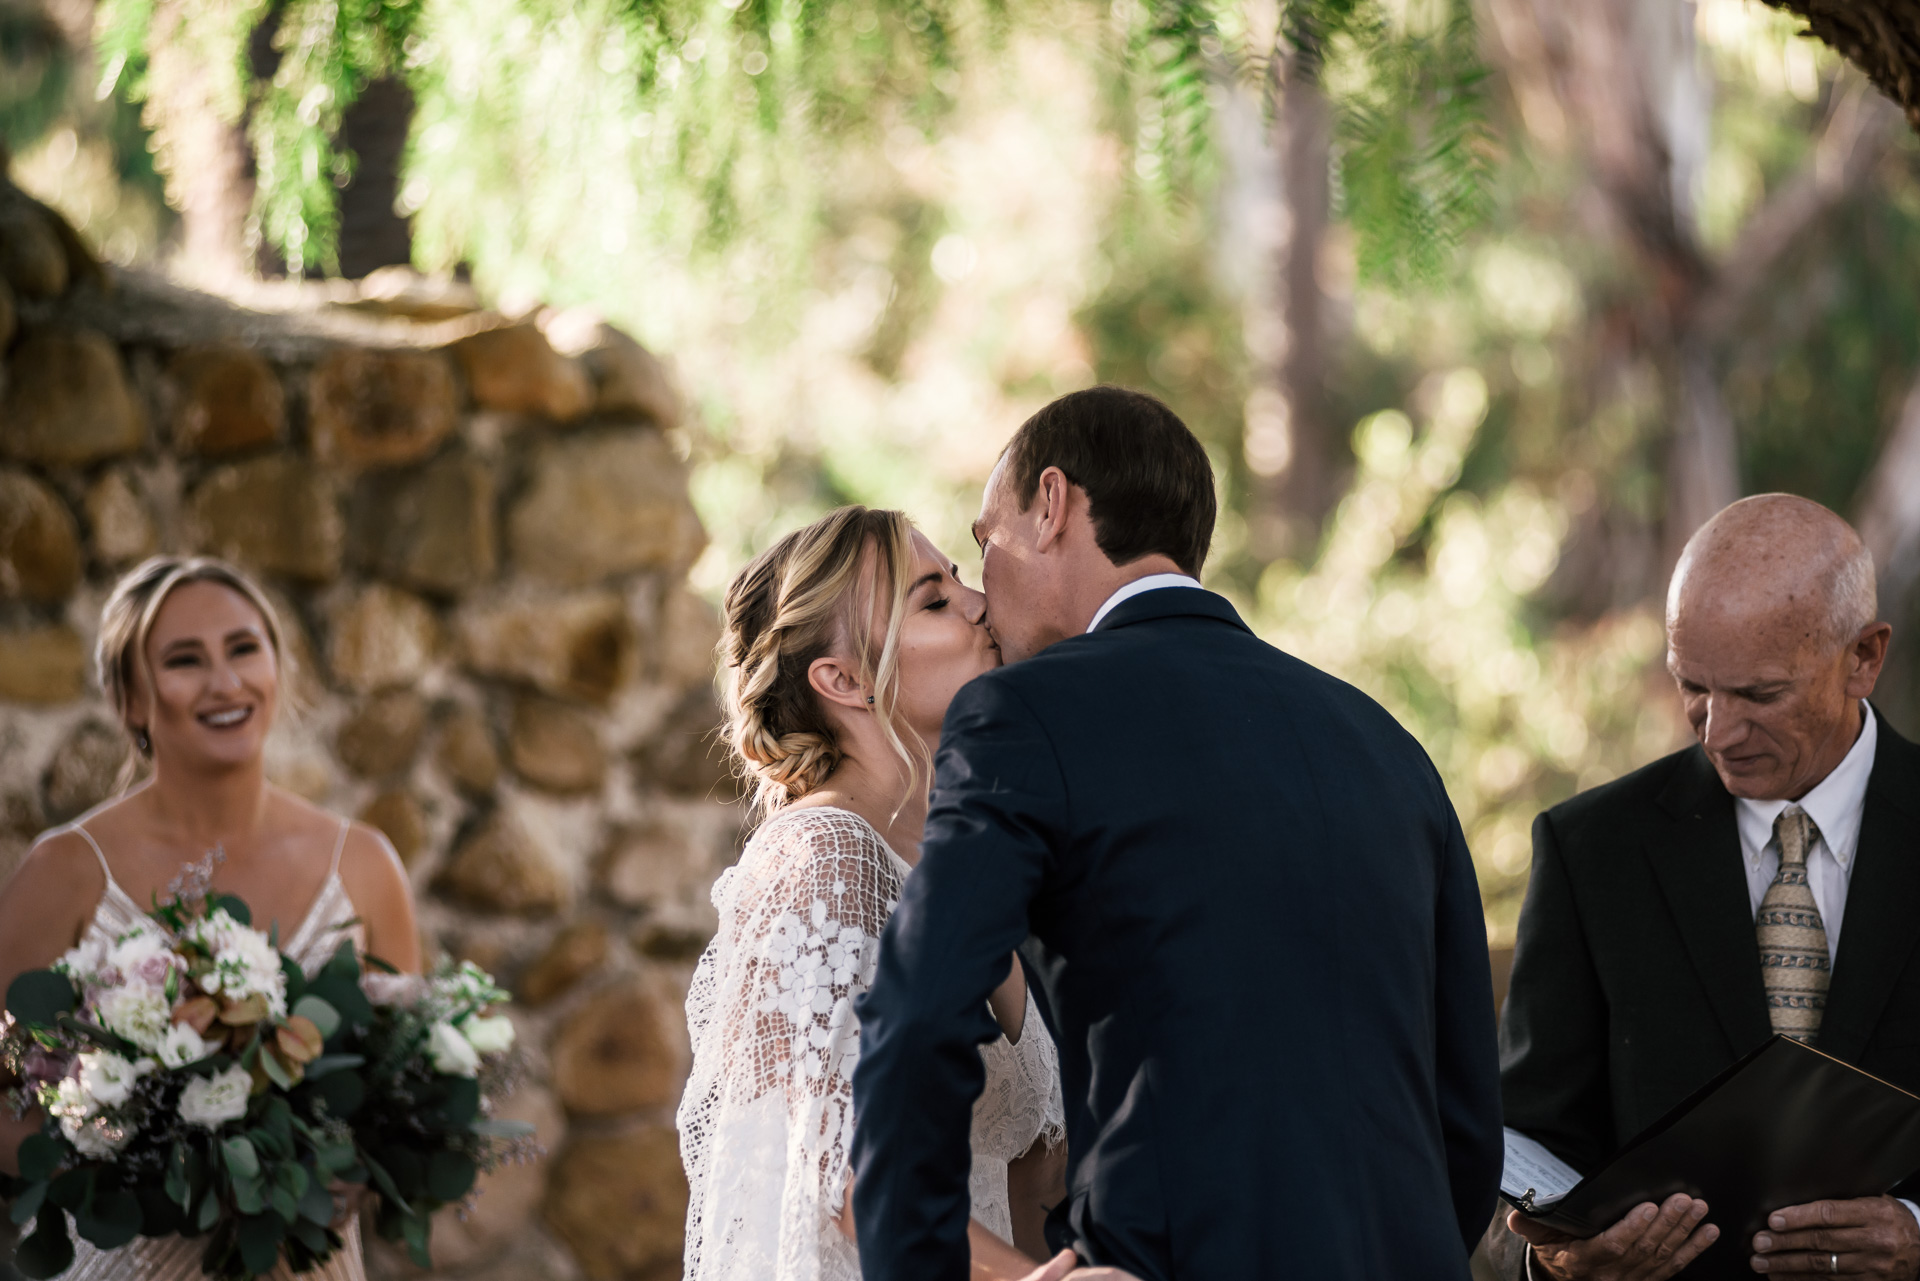 romantic first kiss captured by photographer during romantic wedding at the historic Leo Carrillo Ranch in Carlsbad California